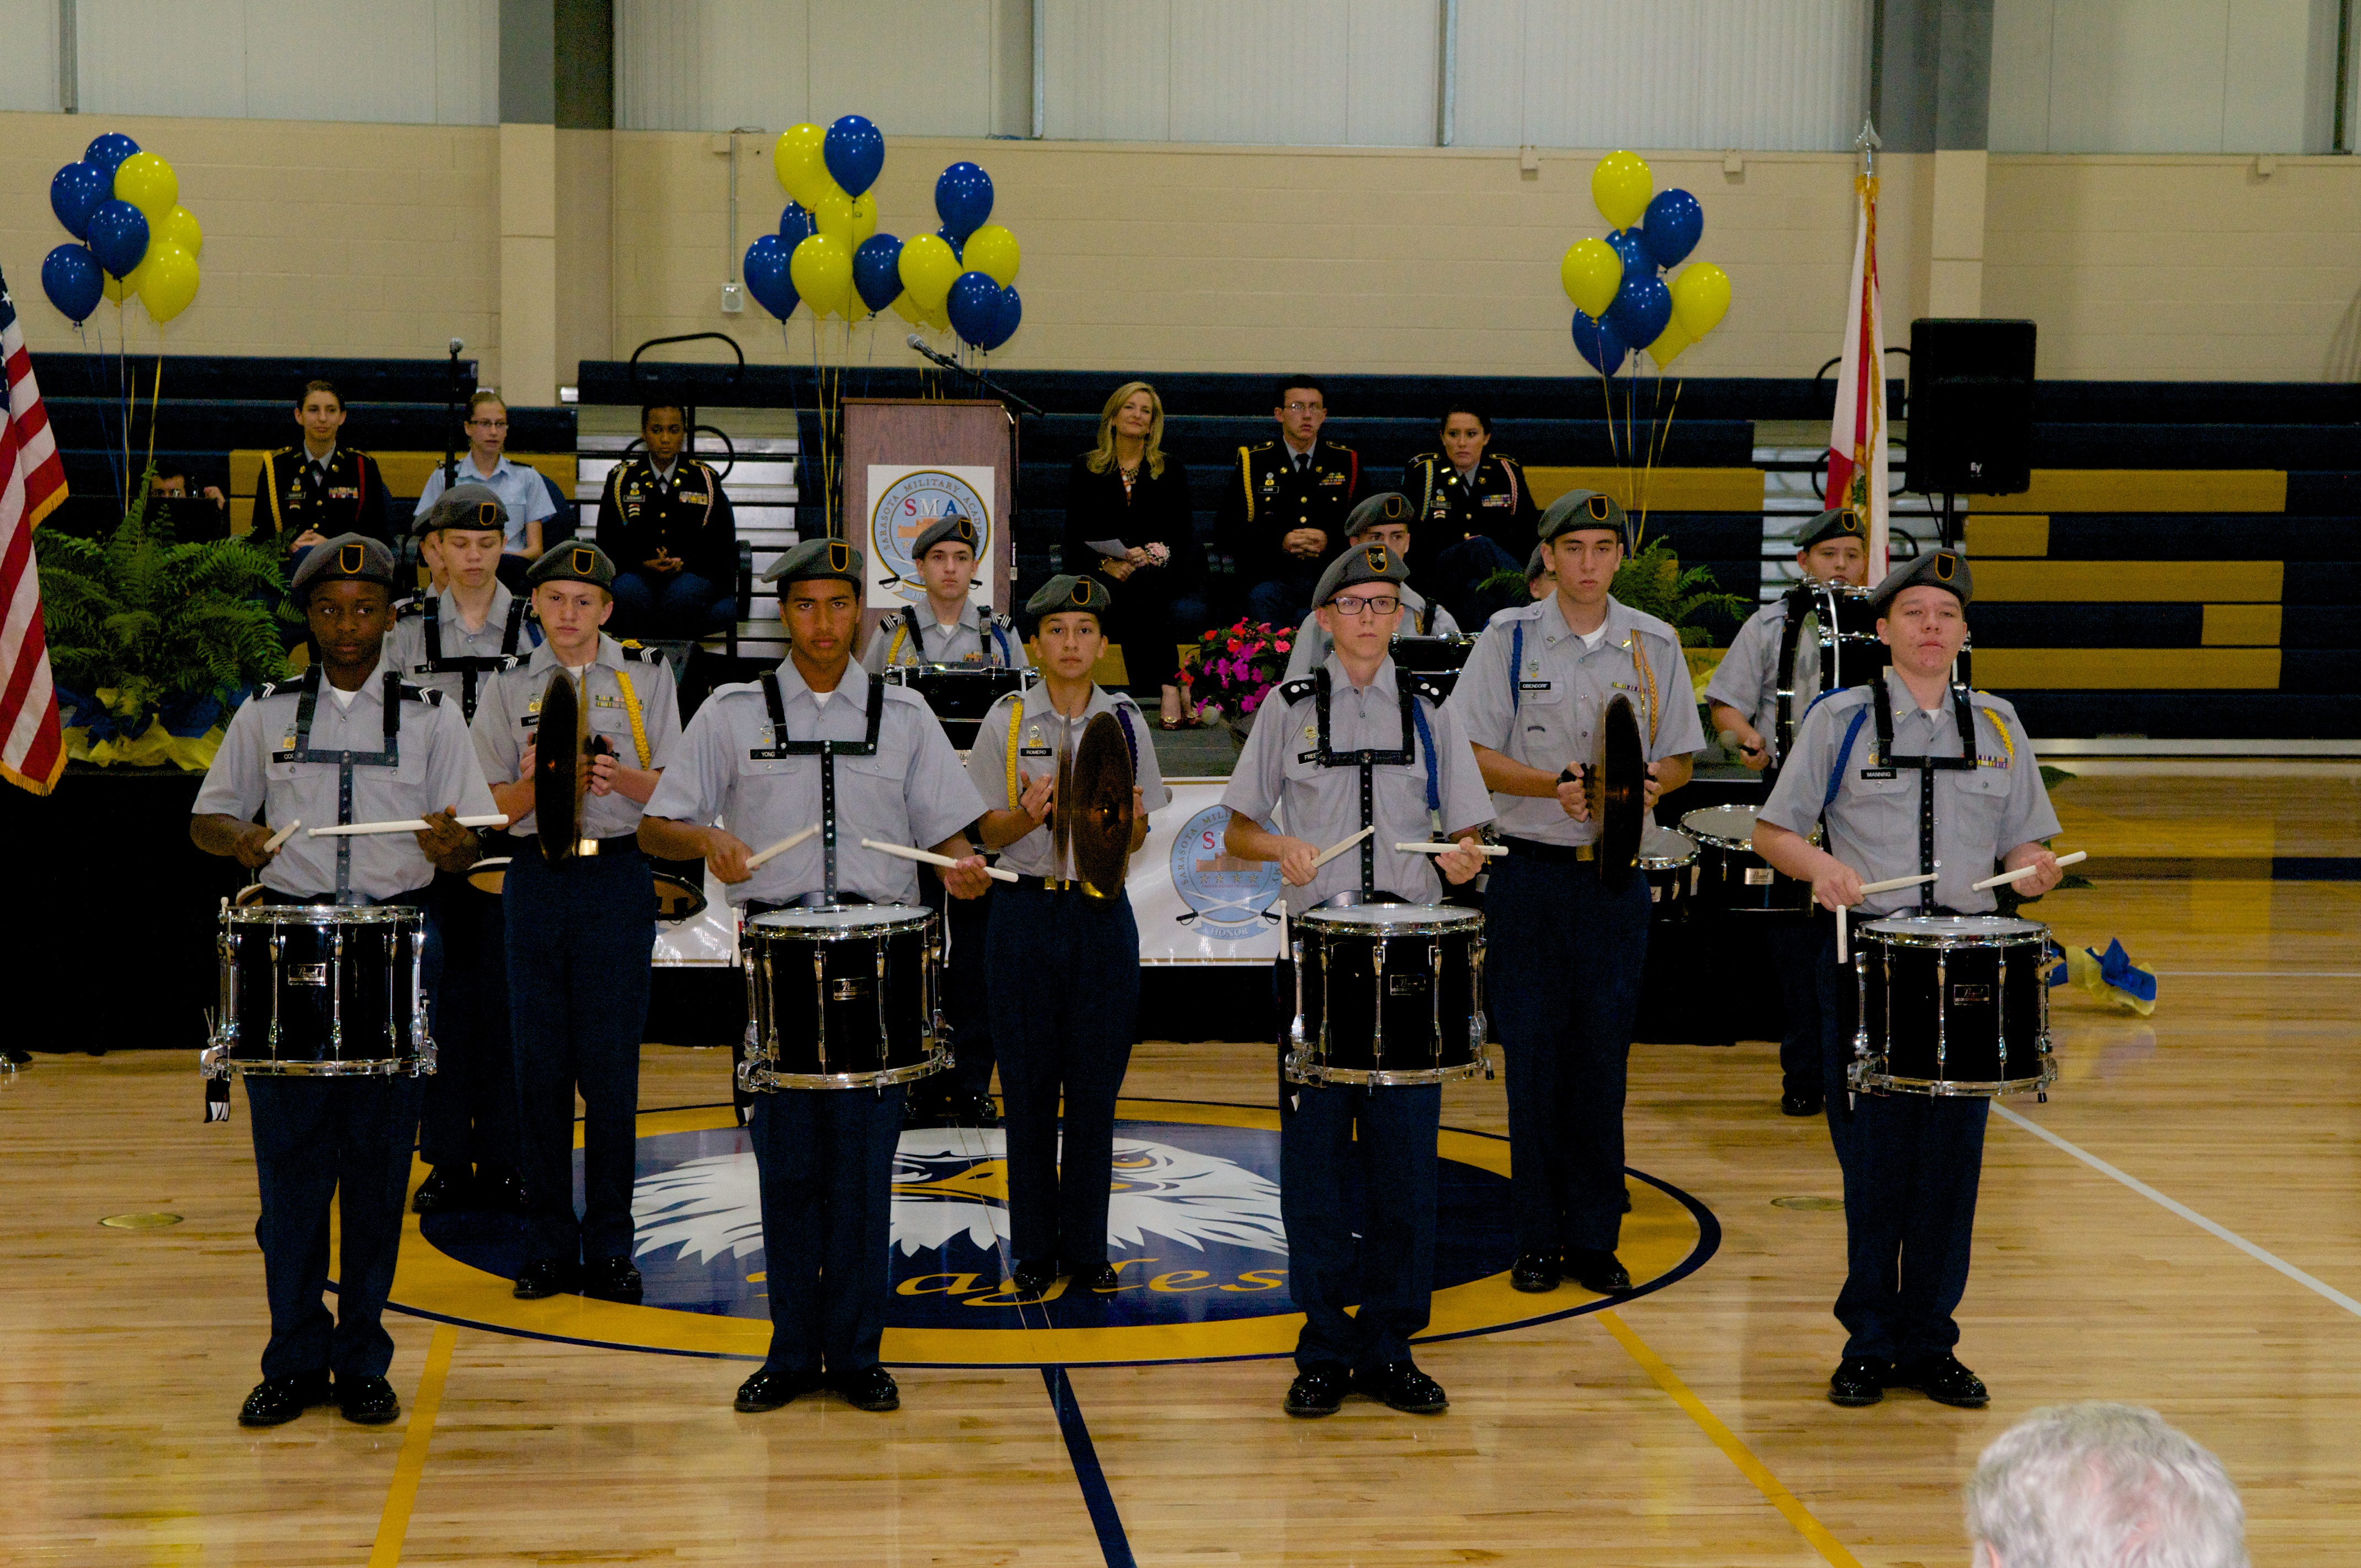 BCFF awards a grant to Sarasota Military Academy for the